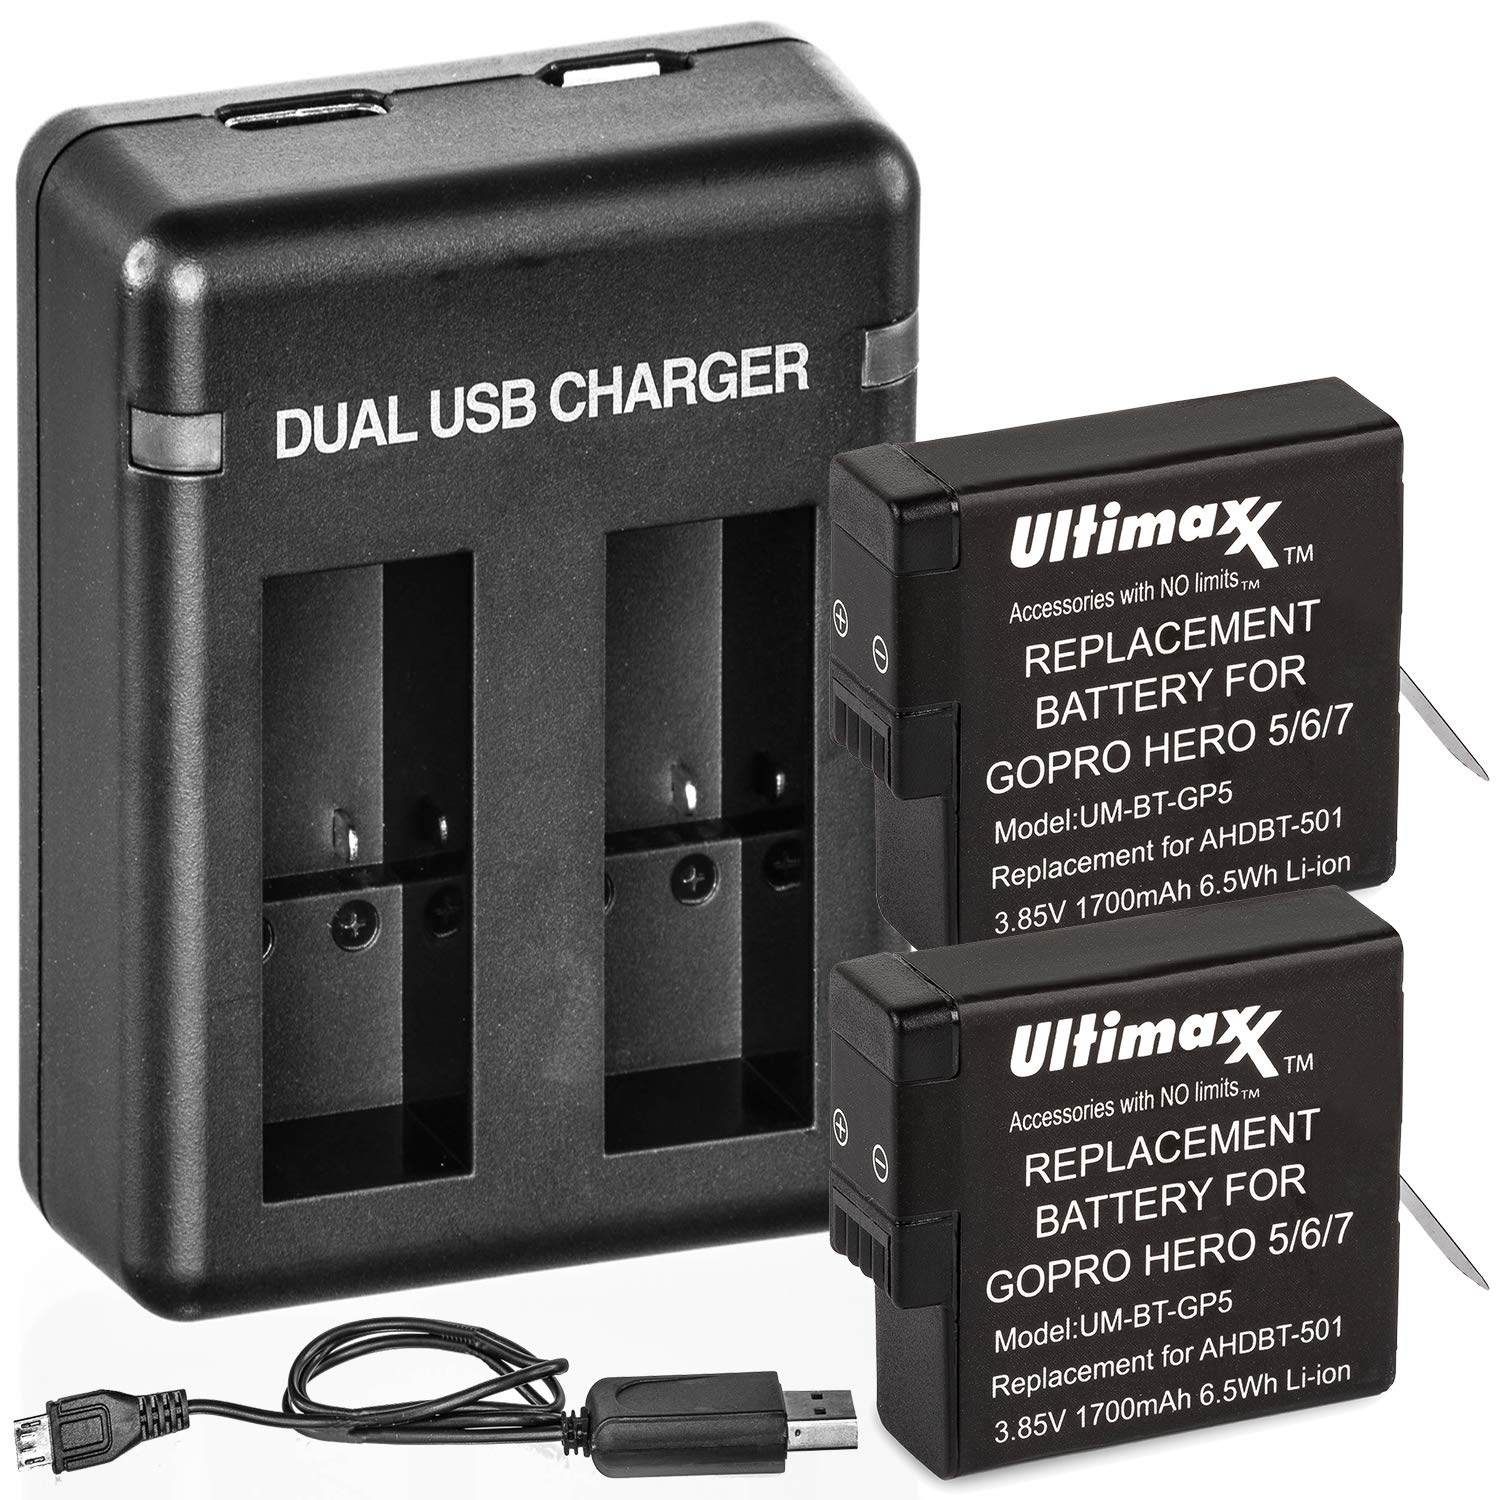 Ultimaxx Dual USB Battery Charger for GoPro Hero 5, 6, 7, 8 Batteries with 2X Extended Life Replacement Battery (1700mAh / 3.85V / 6.5Wh) for Use with GoPro HERO5, HERO6, HERO7 & HERO8